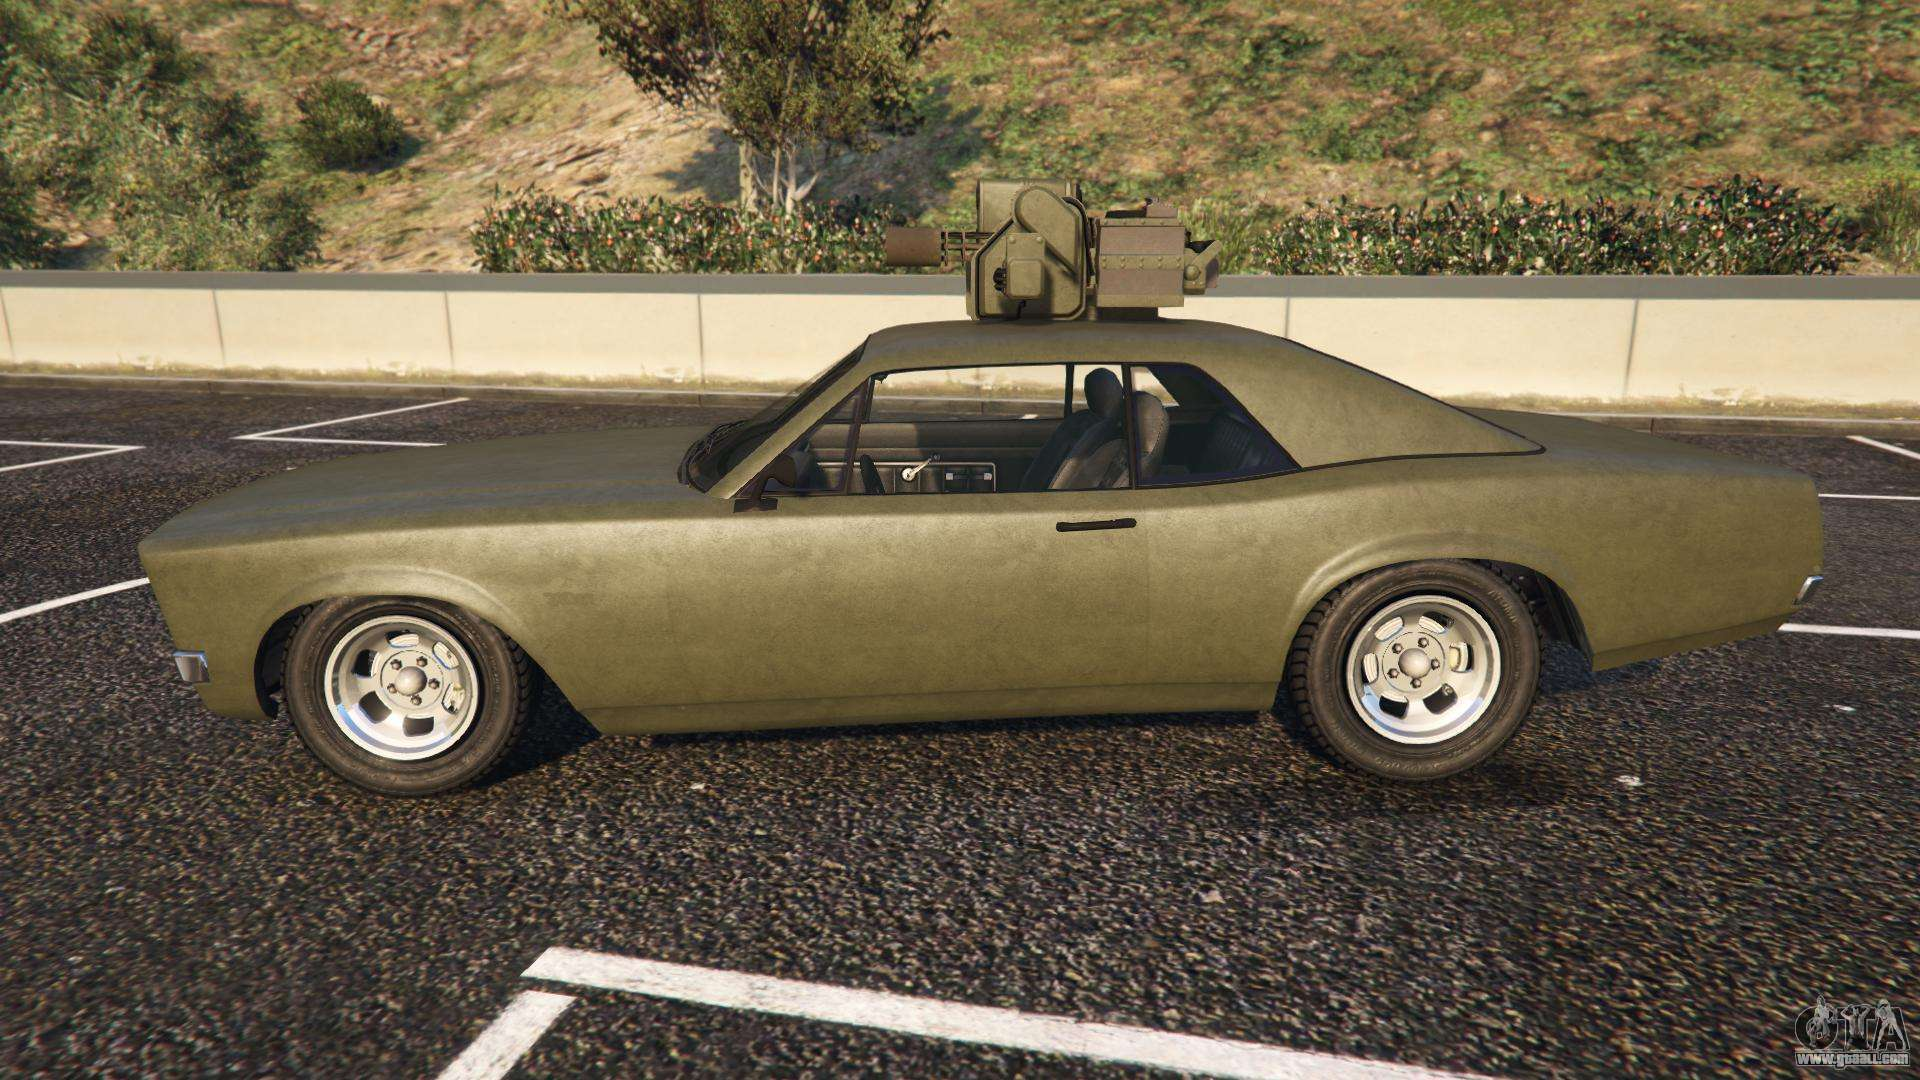 Declasse Weaponized Tampa From Gta Description And